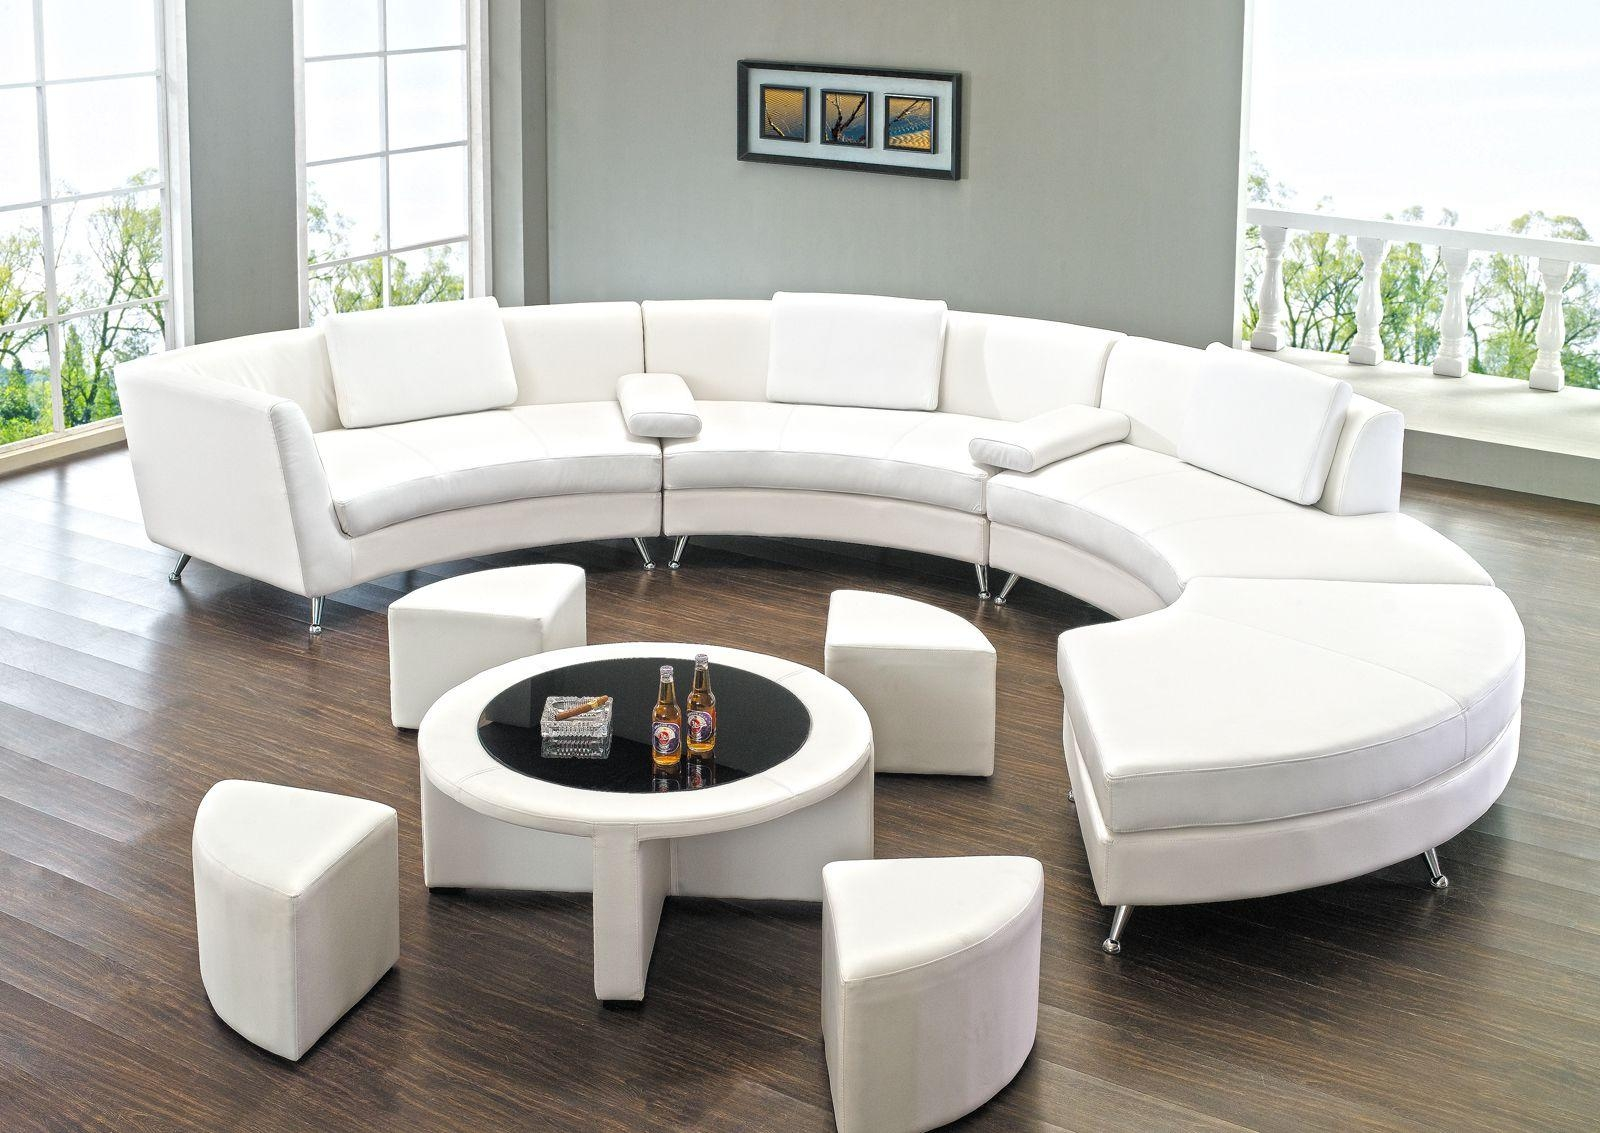 Round Sectional Sofa For Unique Seating Alternative – Traba Homes Throughout Round Sectional Sofa (Image 16 of 20)